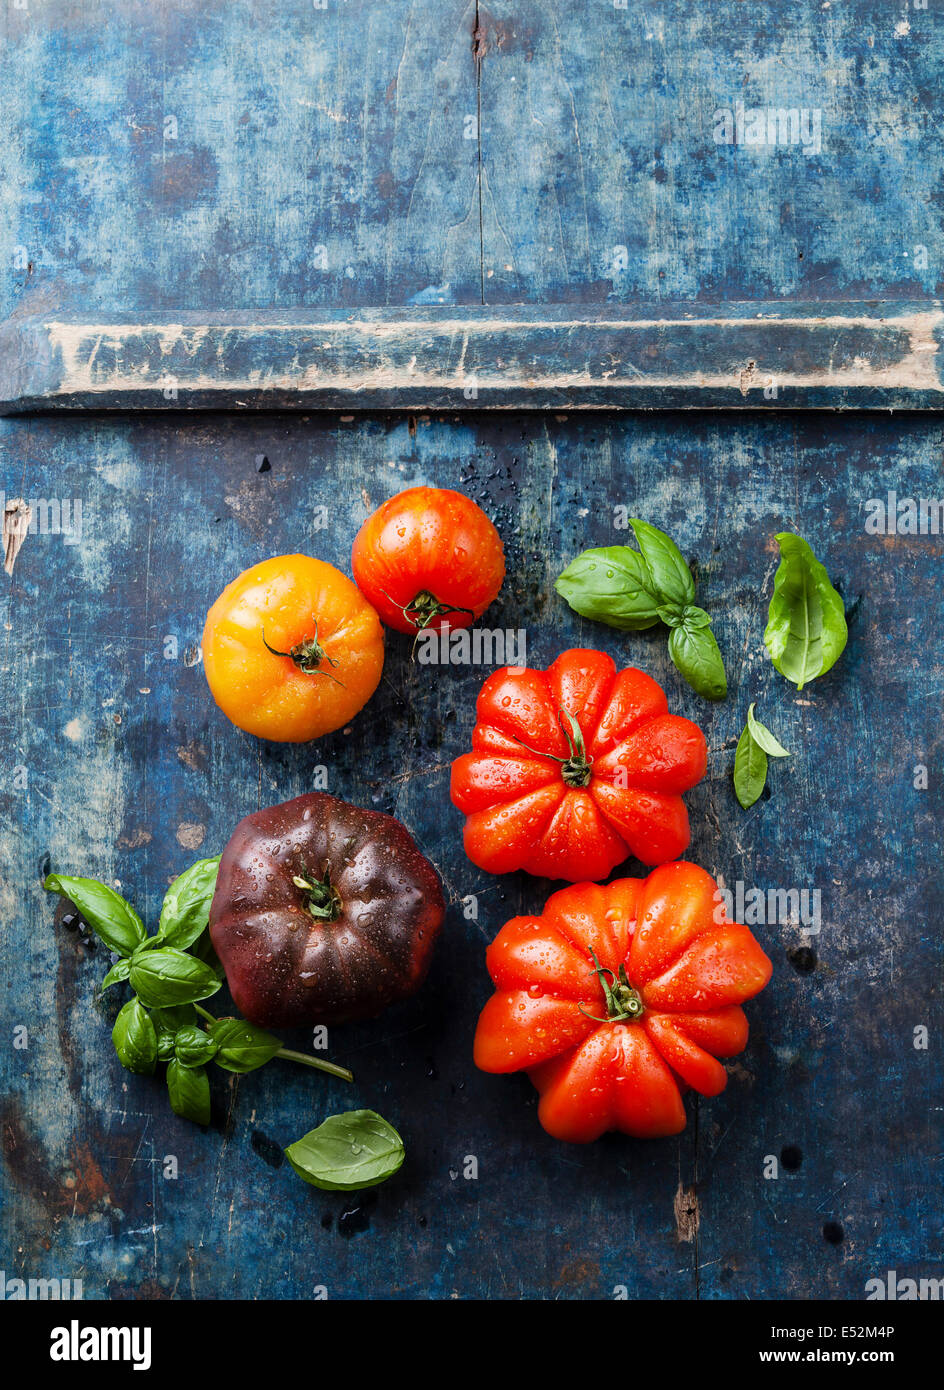 Ripe fresh colorful tomatoes on blue wooden background - Stock Image